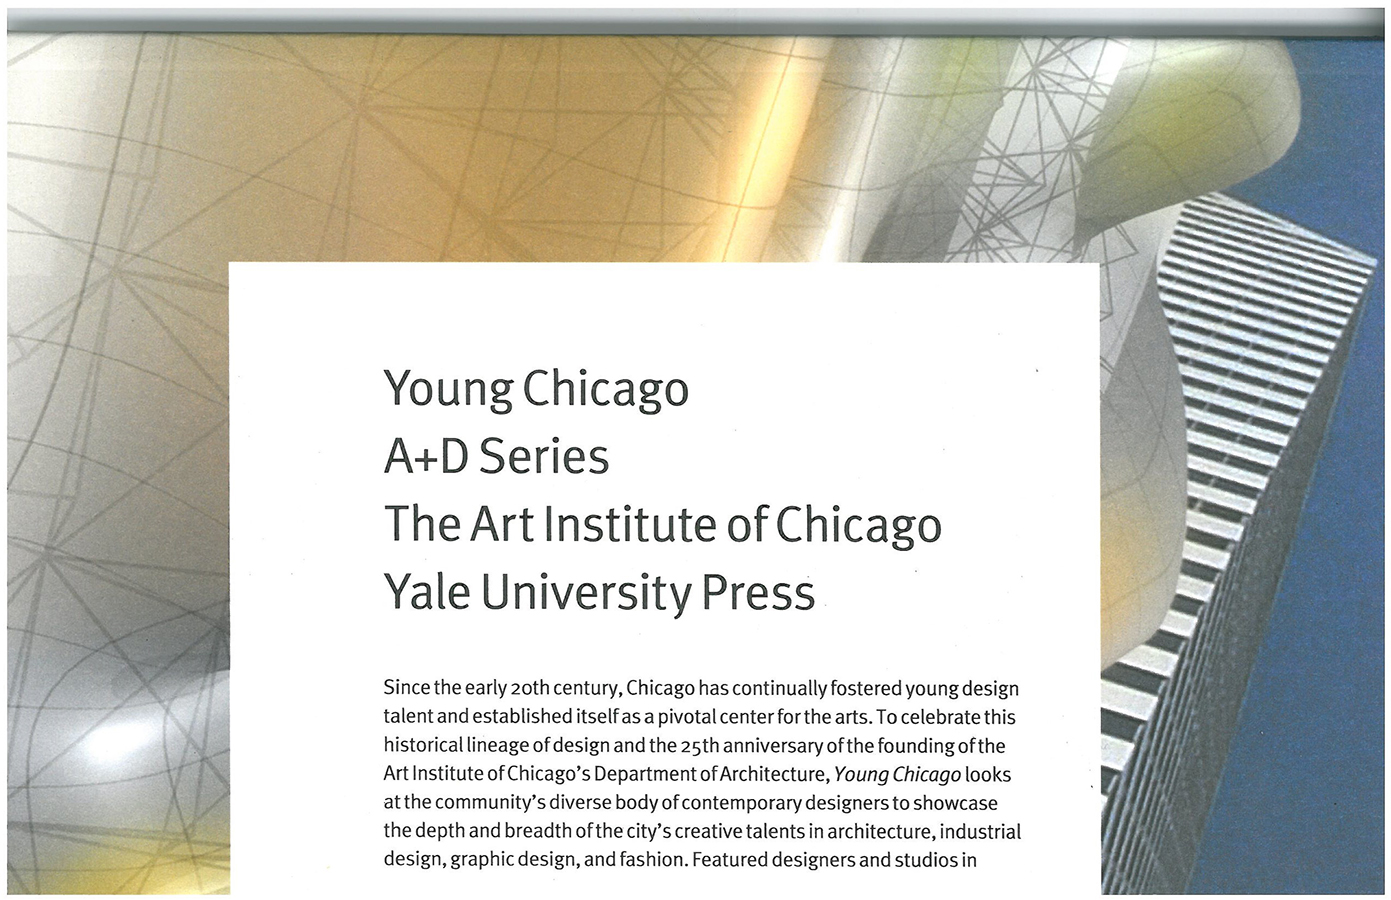 young chicago_Page_1.jpg